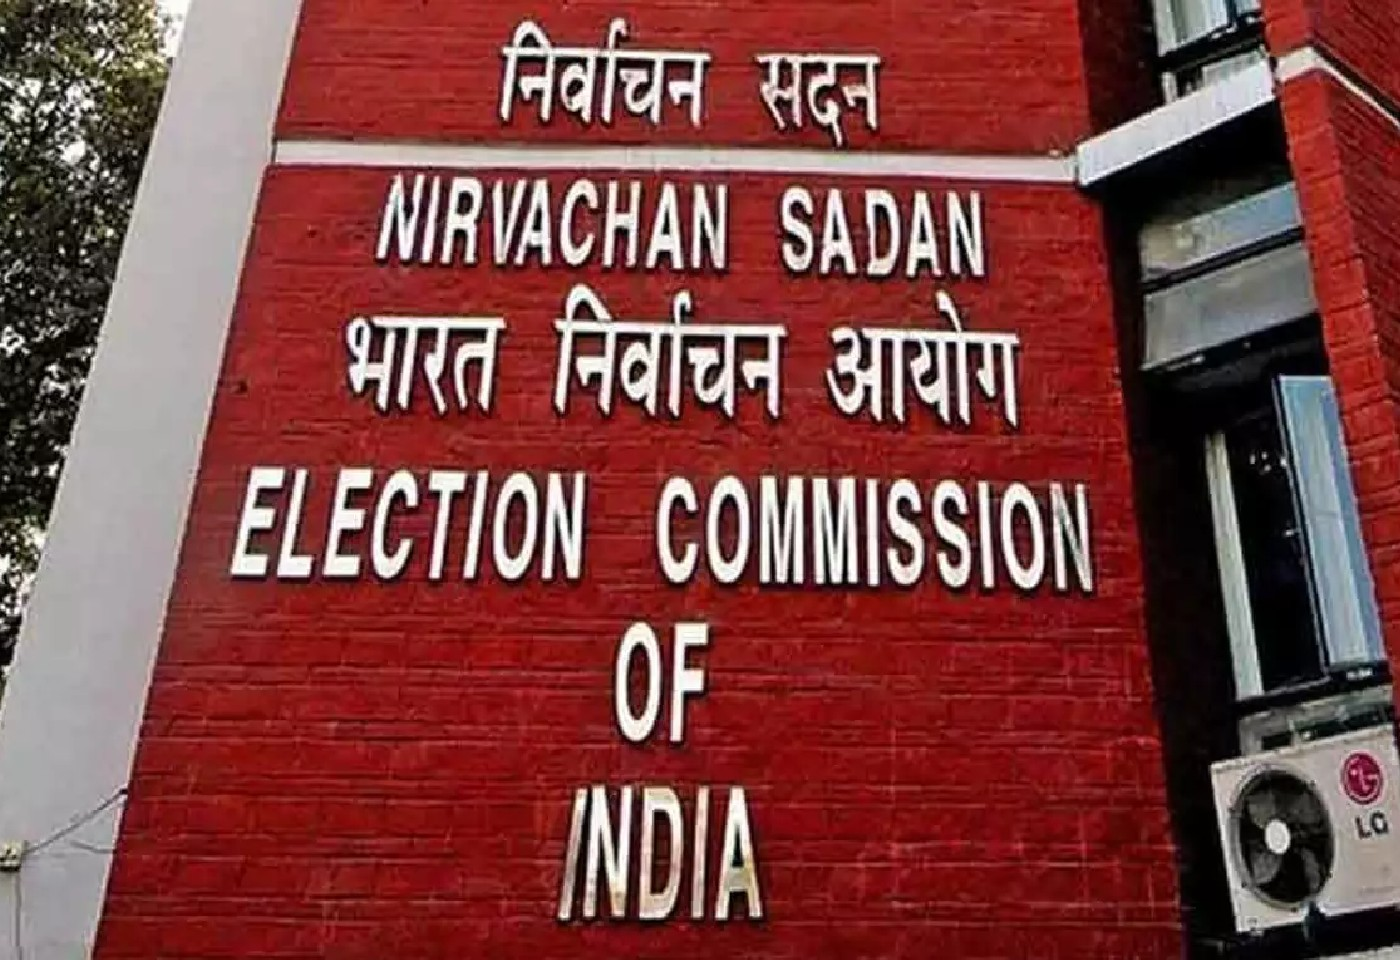 At the end of the month, the schedule of elections in 5 states may be announced by Election Commission